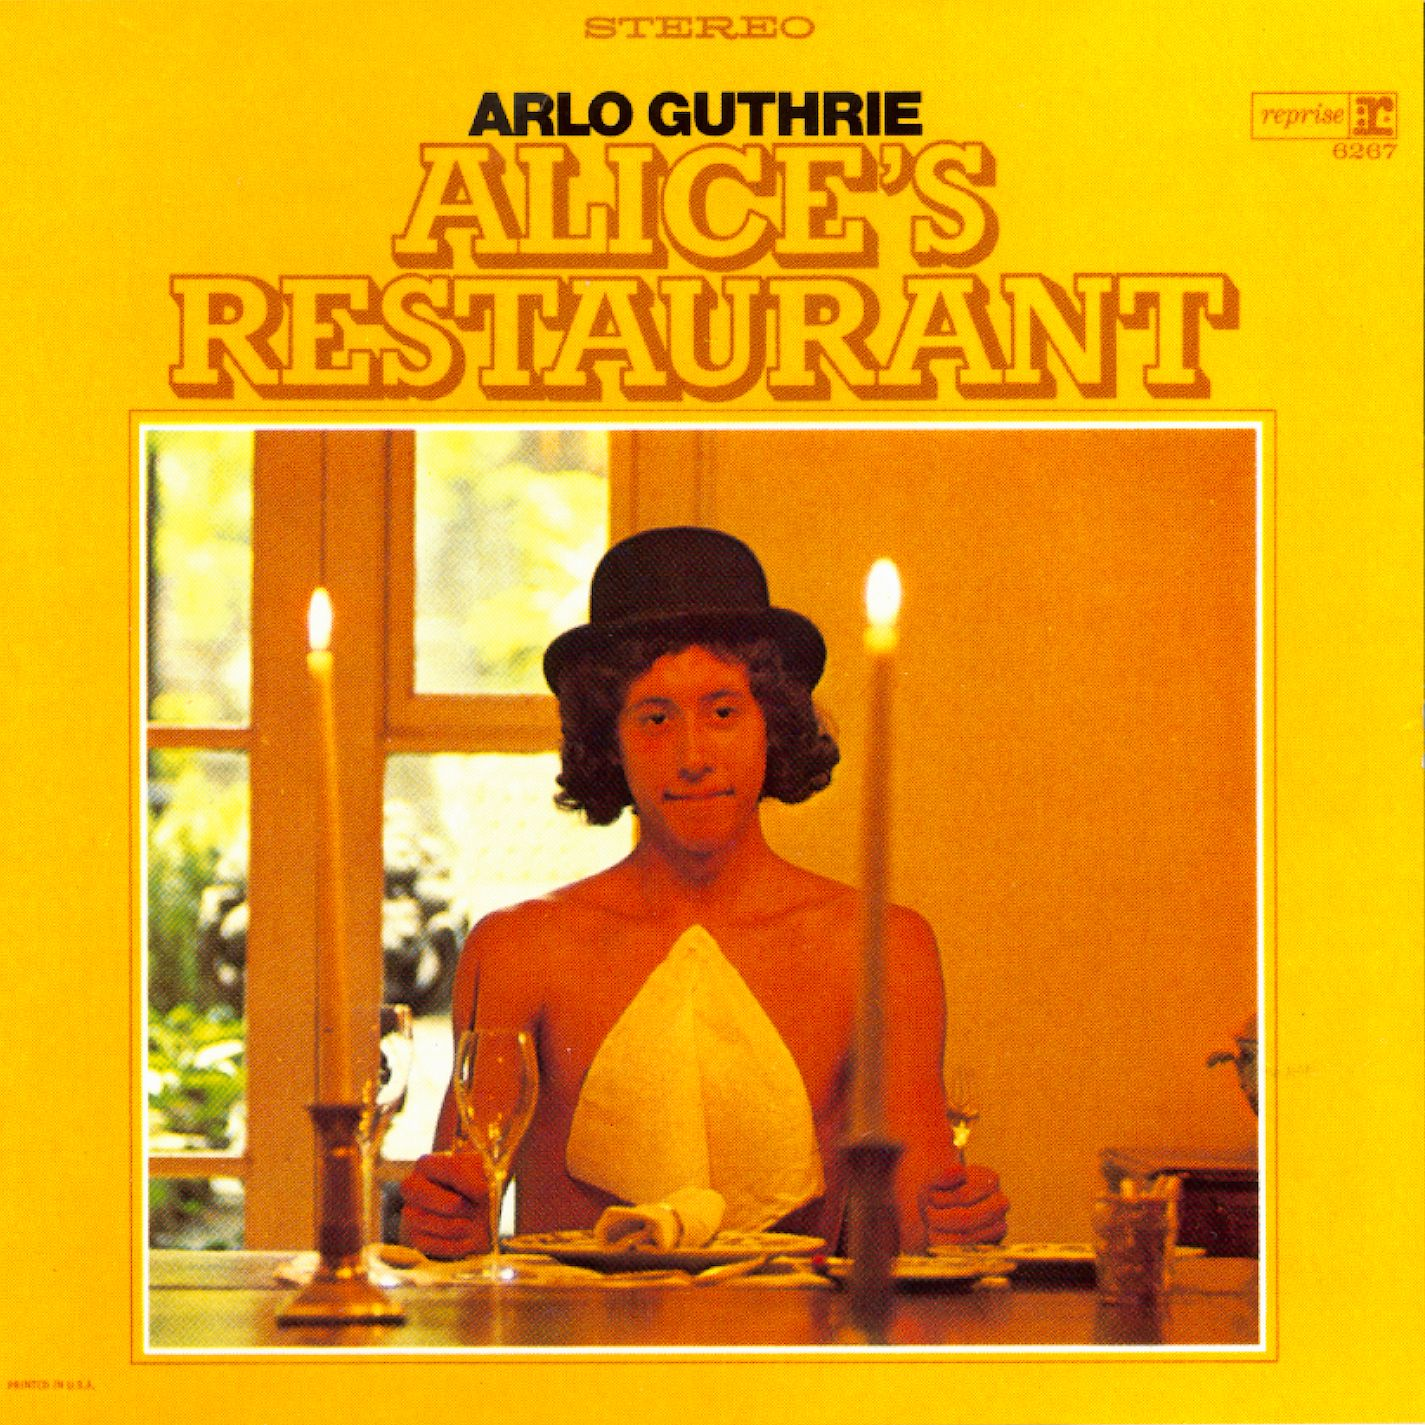 arlo guthrie and alices restaurant Live 2005 farm aid category music license standard youtube license show more show less comments • 87 default profile photo add a public comment top comments top comments newest first roger lynn2 years ago in college a bunch of us were at a bar one night with a guitar player and.